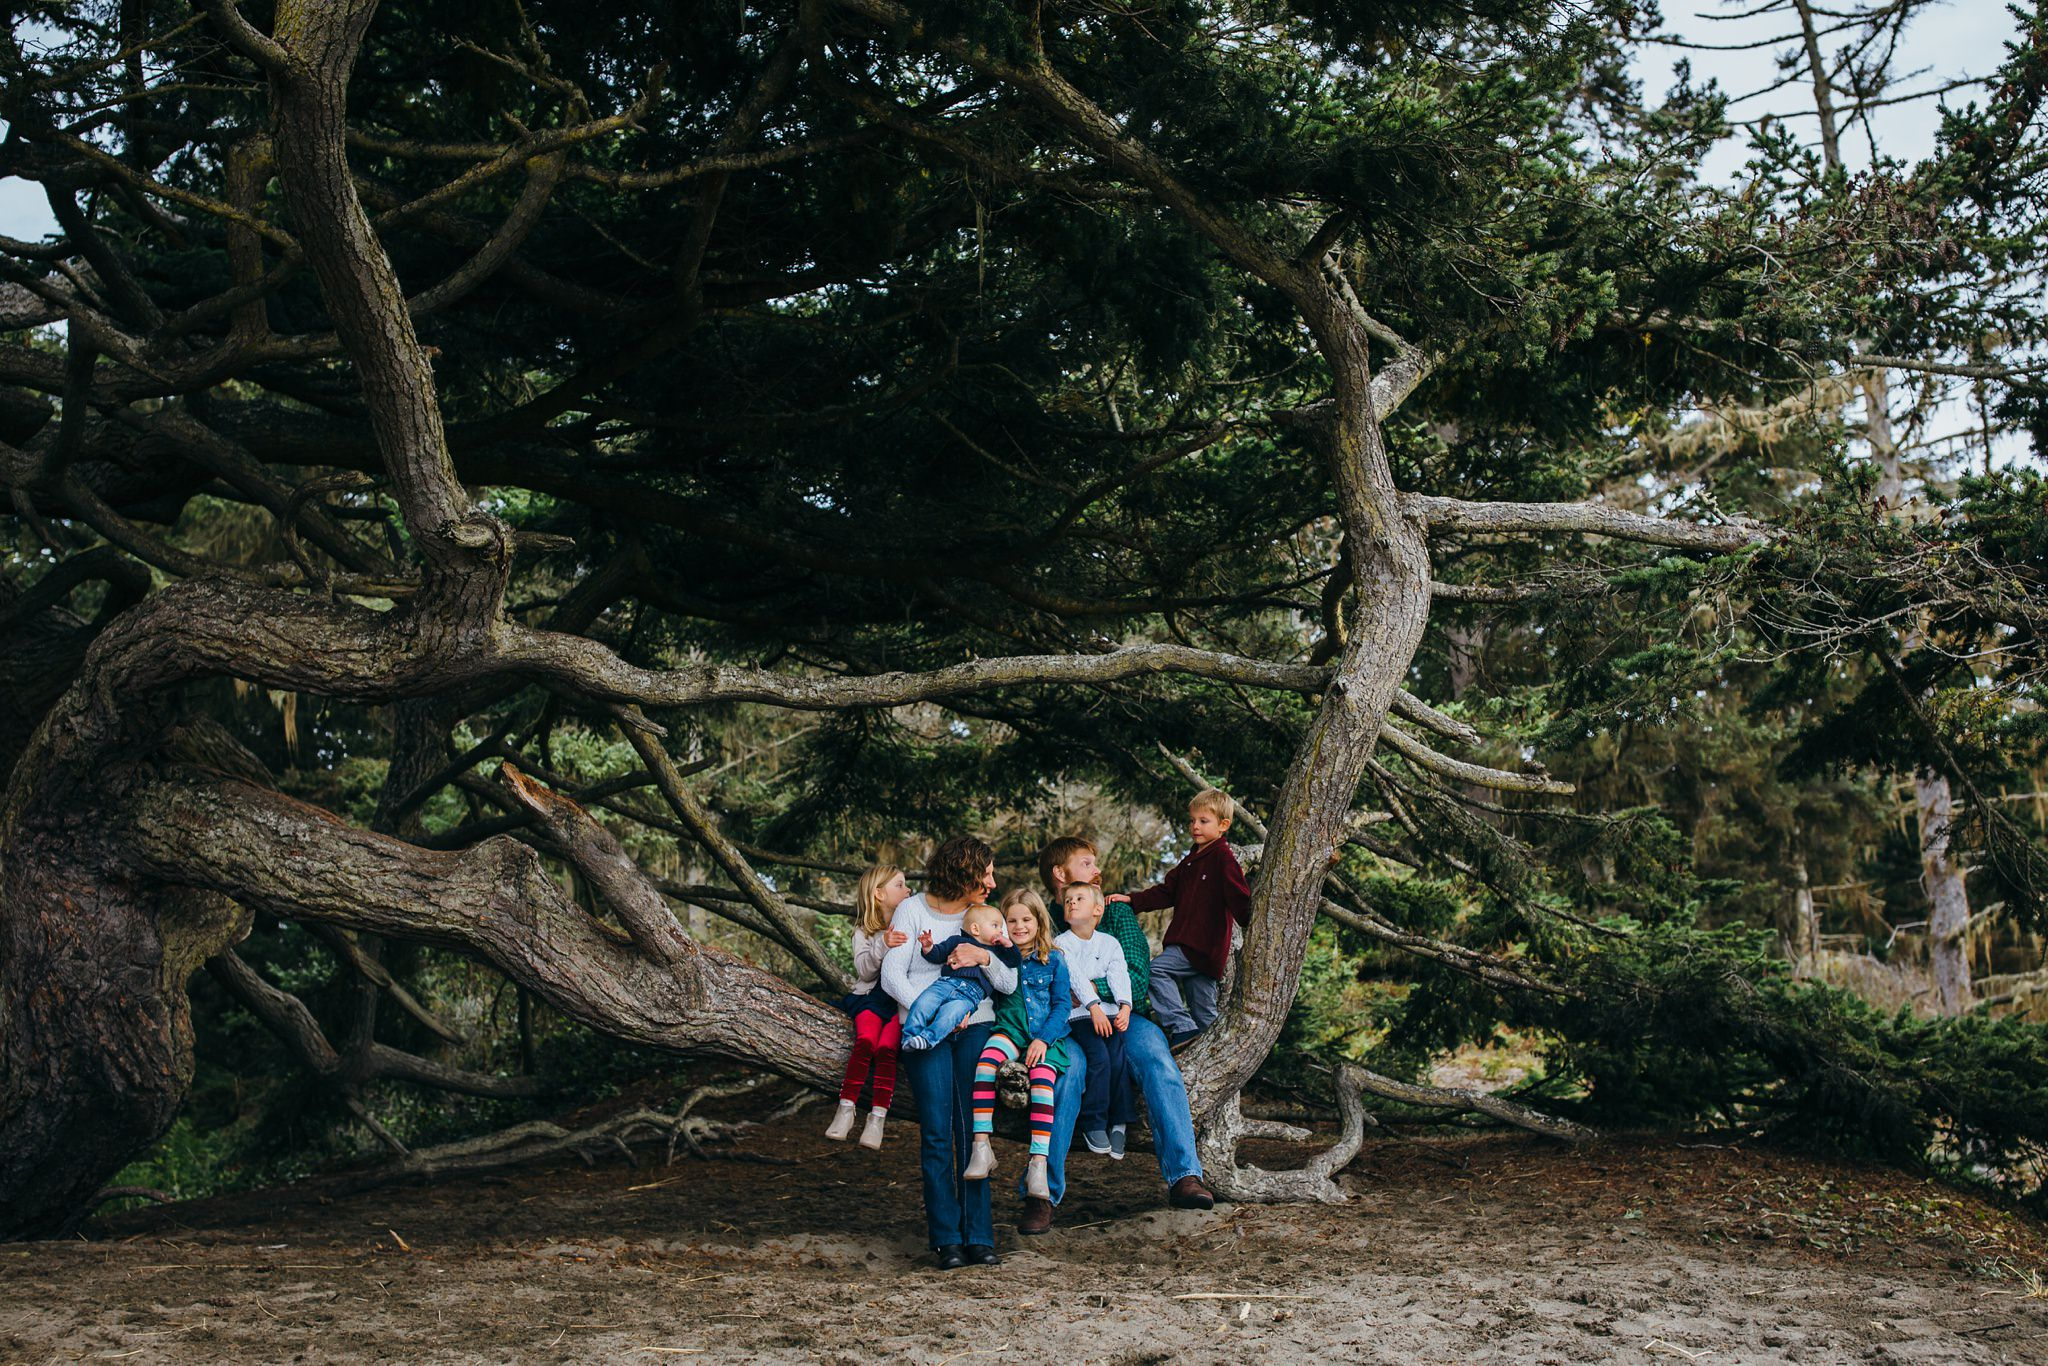 kara chappell whidbey island family photography family sitting in tree at deception pass state park